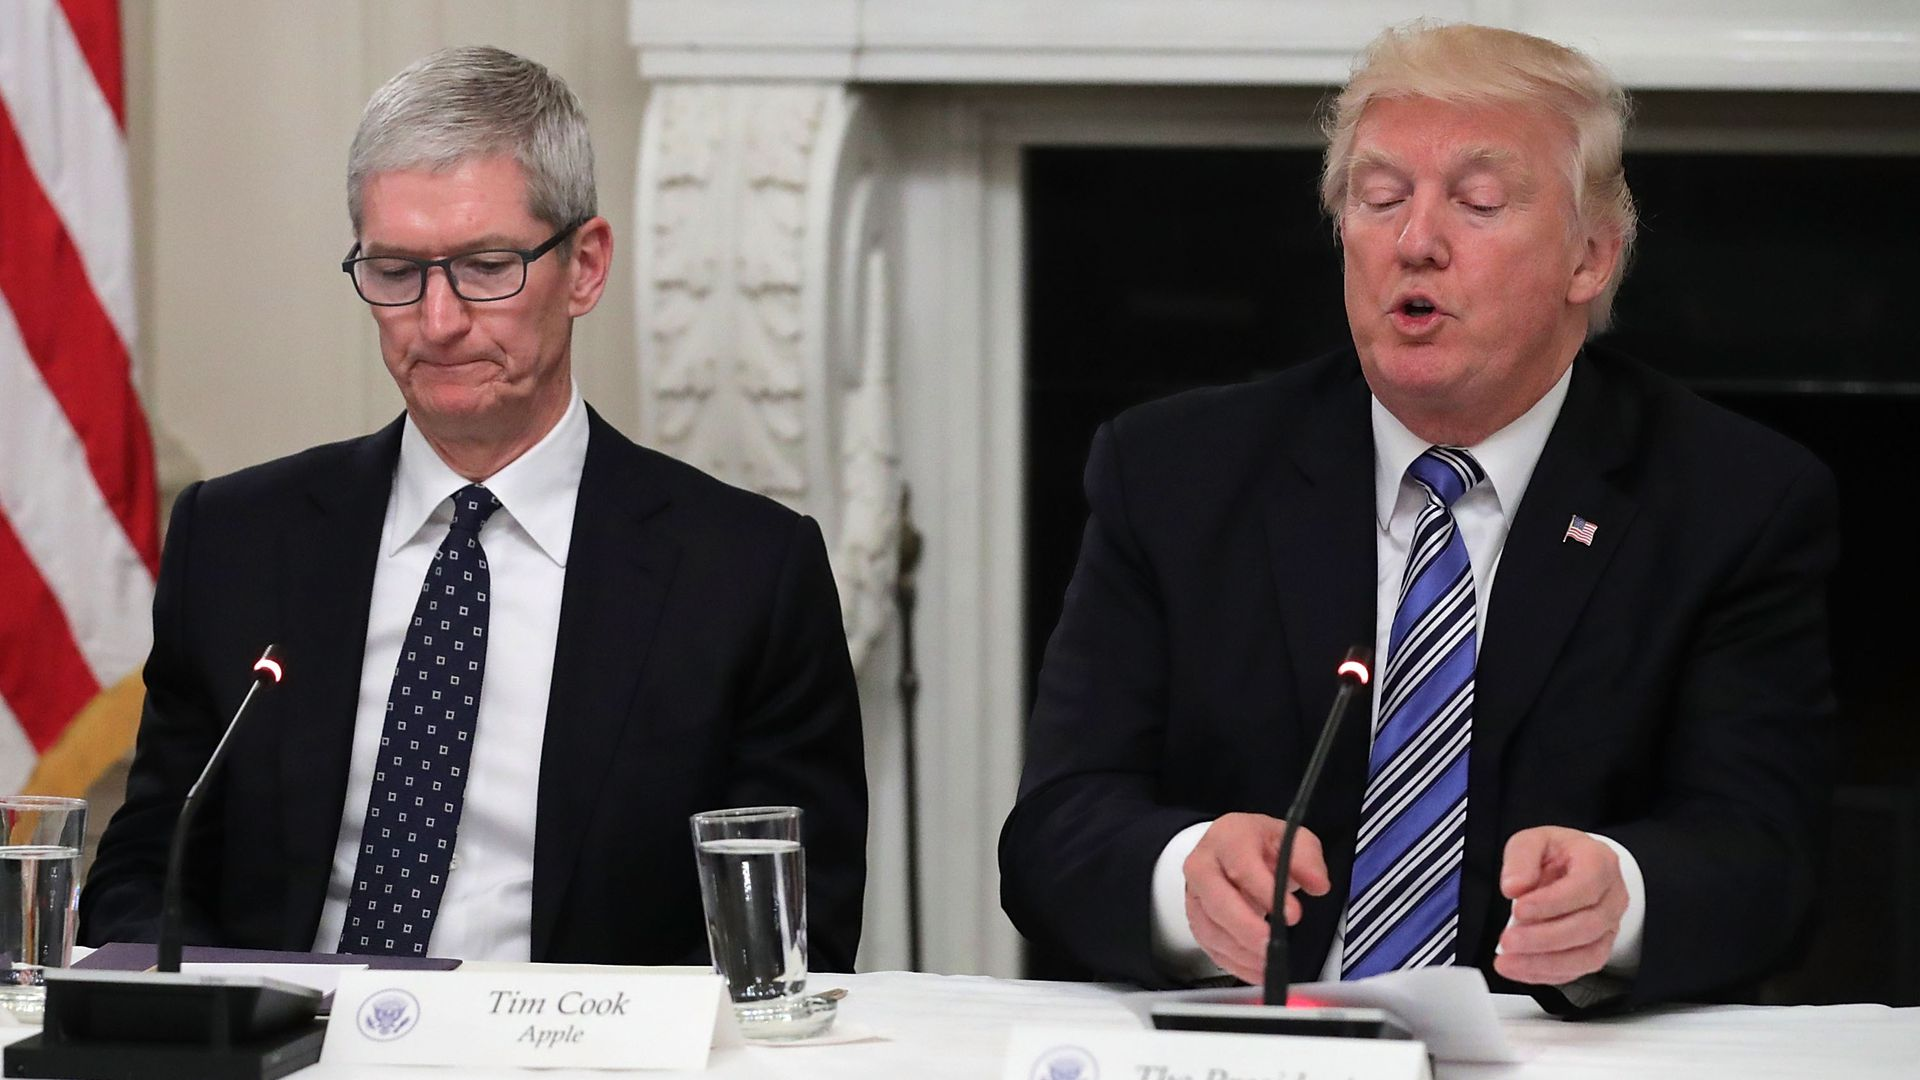 Apple's Tim Cook meets with Trump as additional China tariffs loom